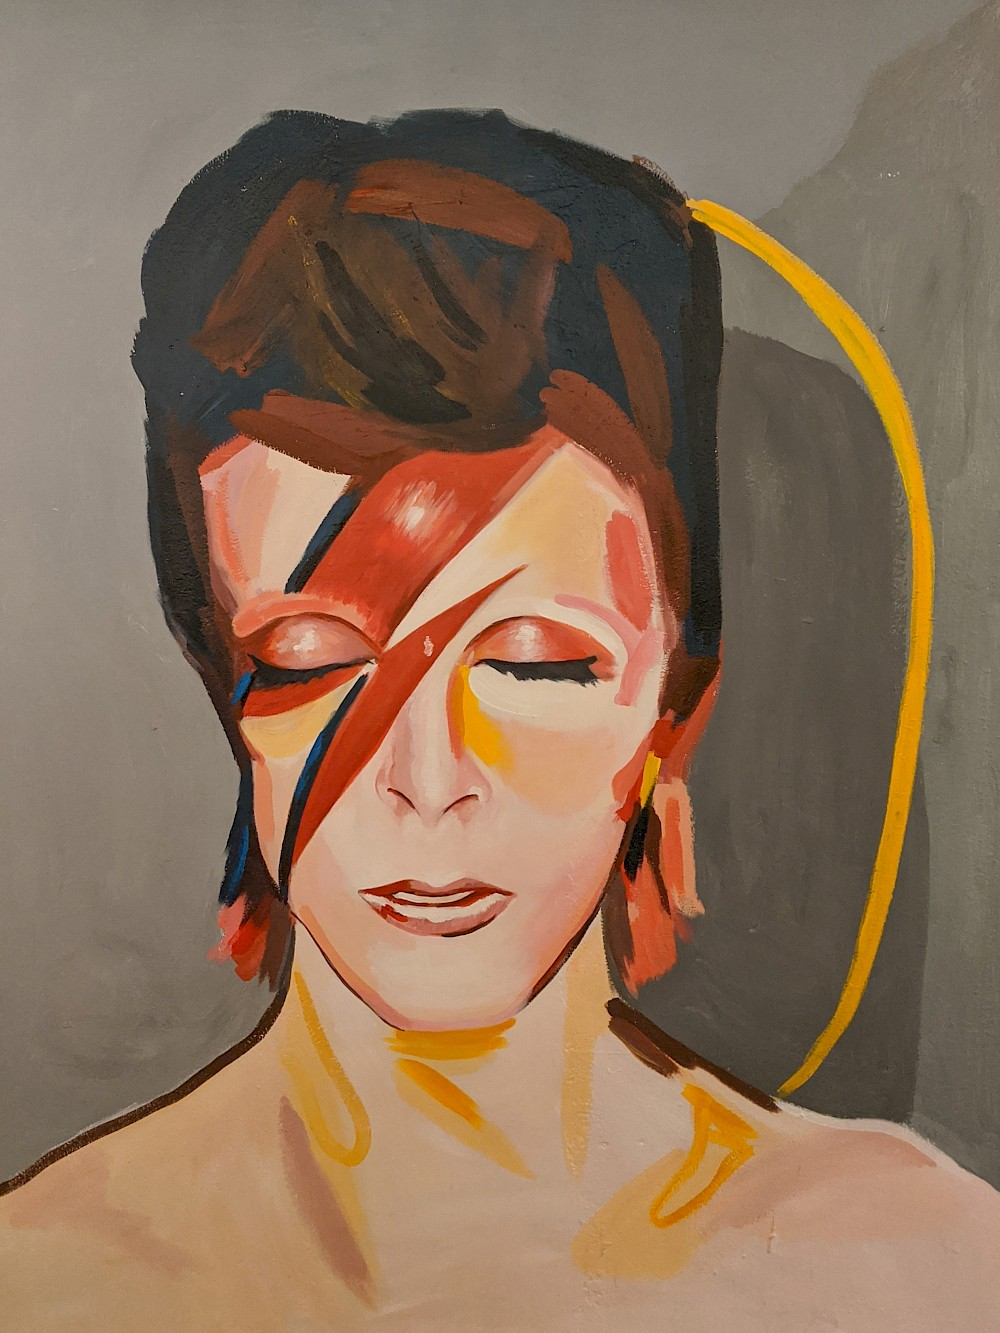 painting of David Bowie as Ziggy Stardust